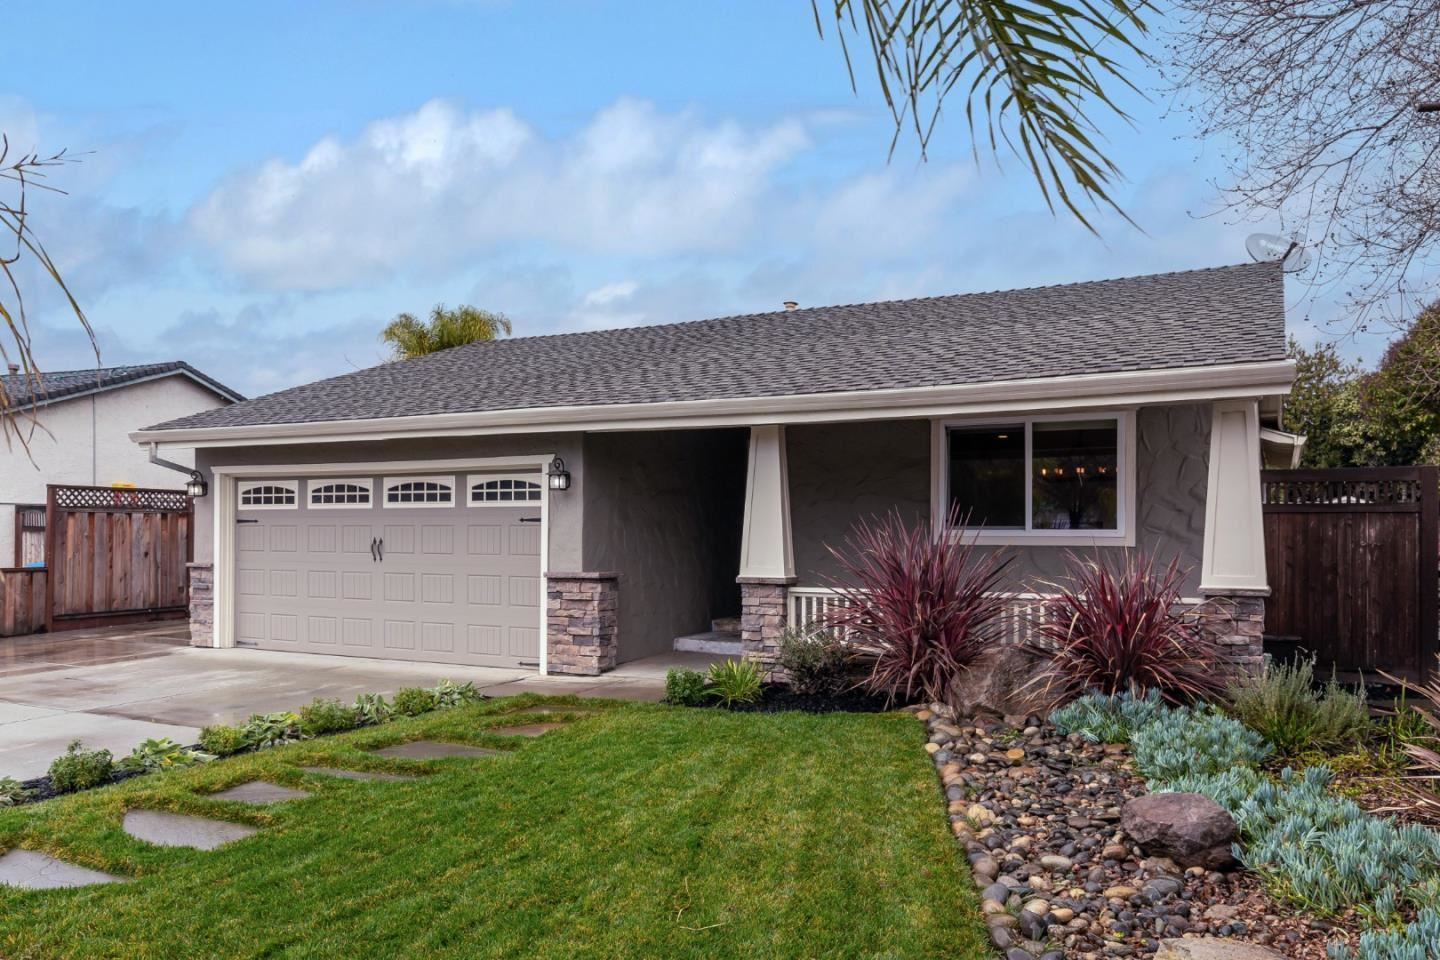 Photo for 847 Welburn AVE, GILROY, CA 95020 (MLS # ML81824630)